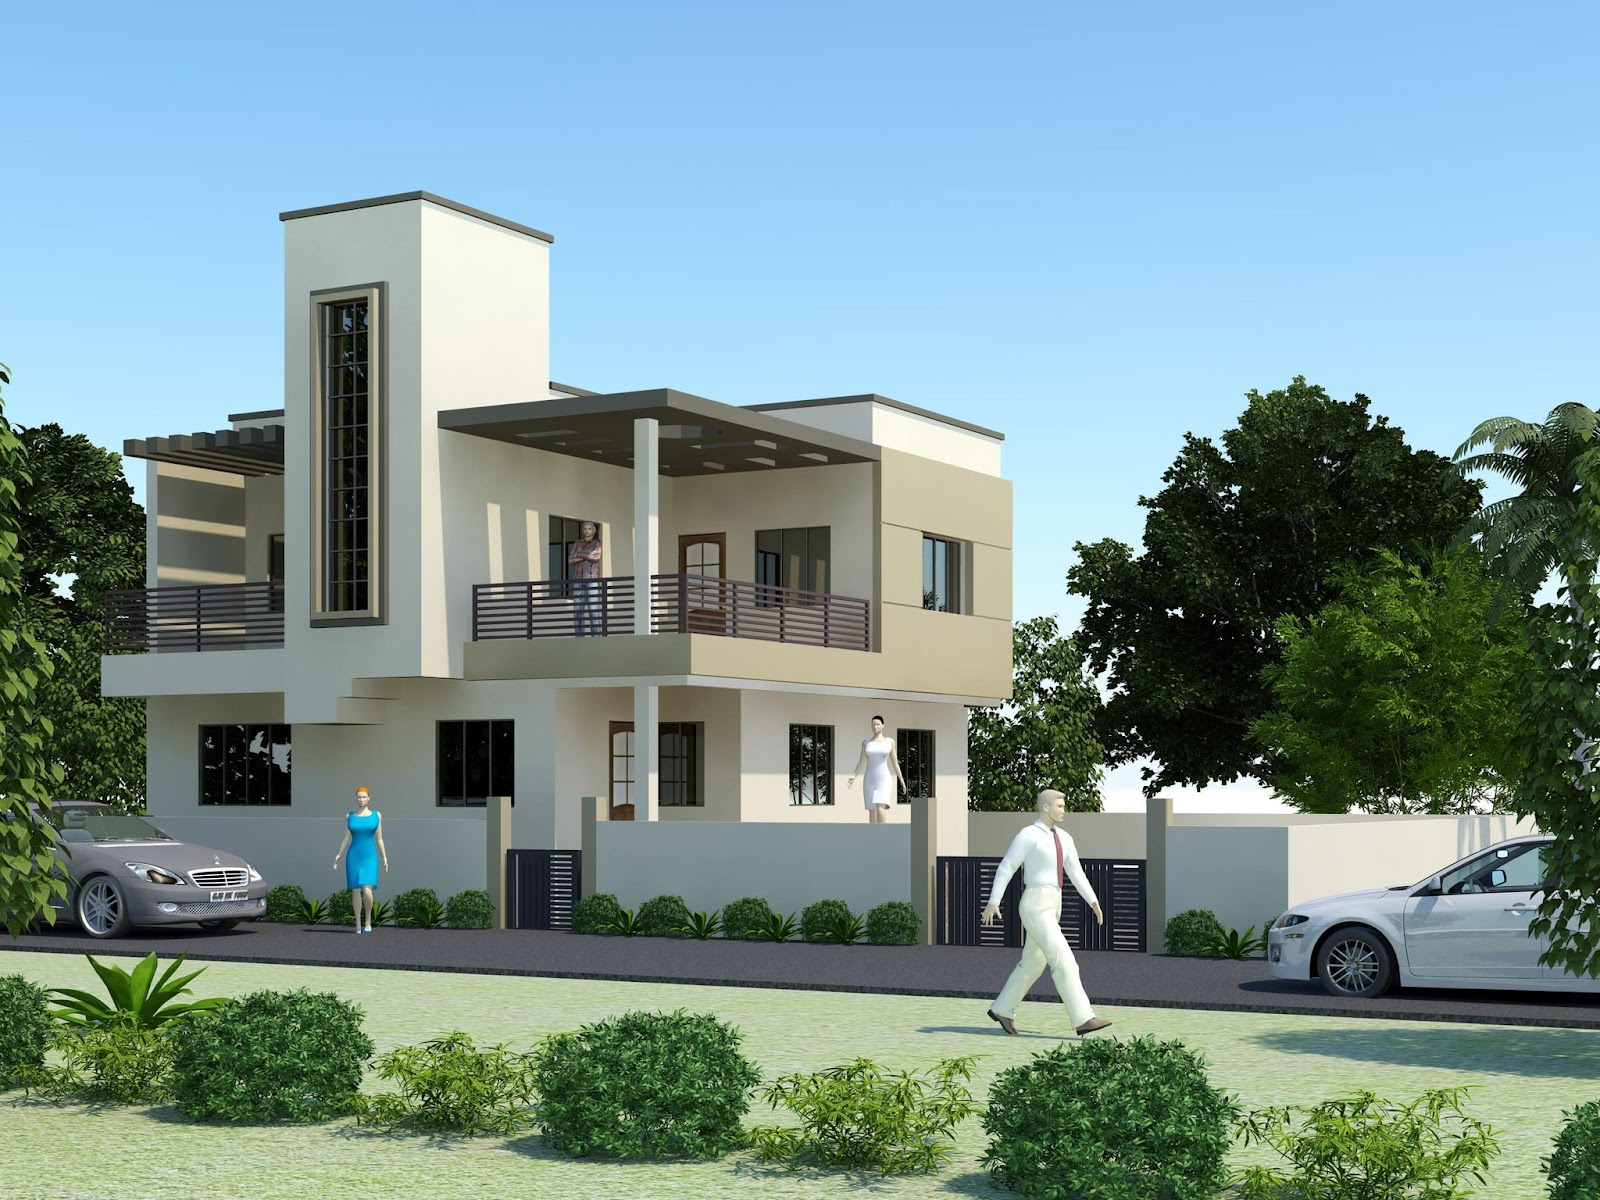 Modern homes exterior designs front views pictures for House front model design